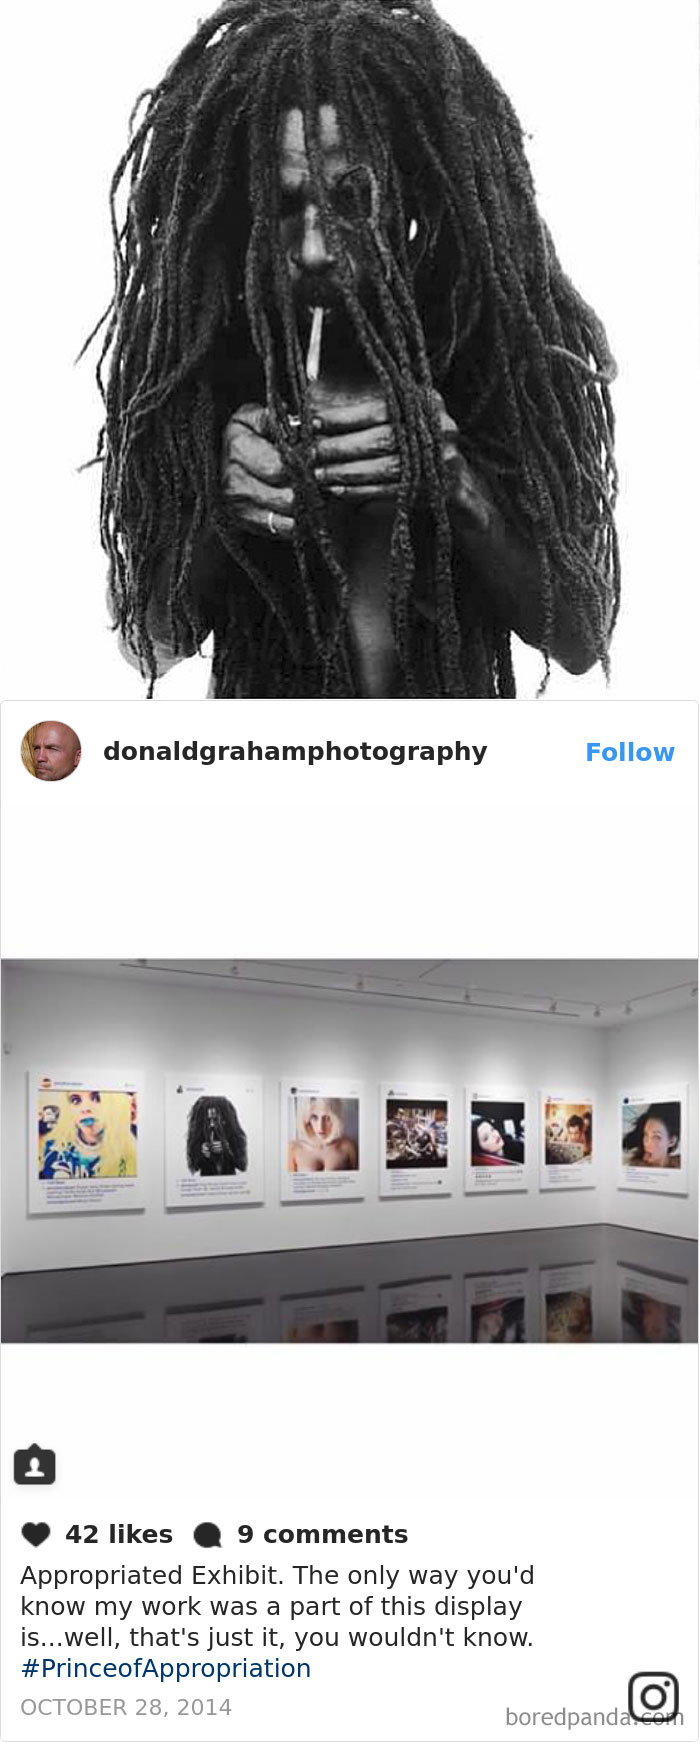 Controversial Artist Richard Prince Exhibits And Sells Screenshots Of Other Photographers' Instagram Photos Without Permission